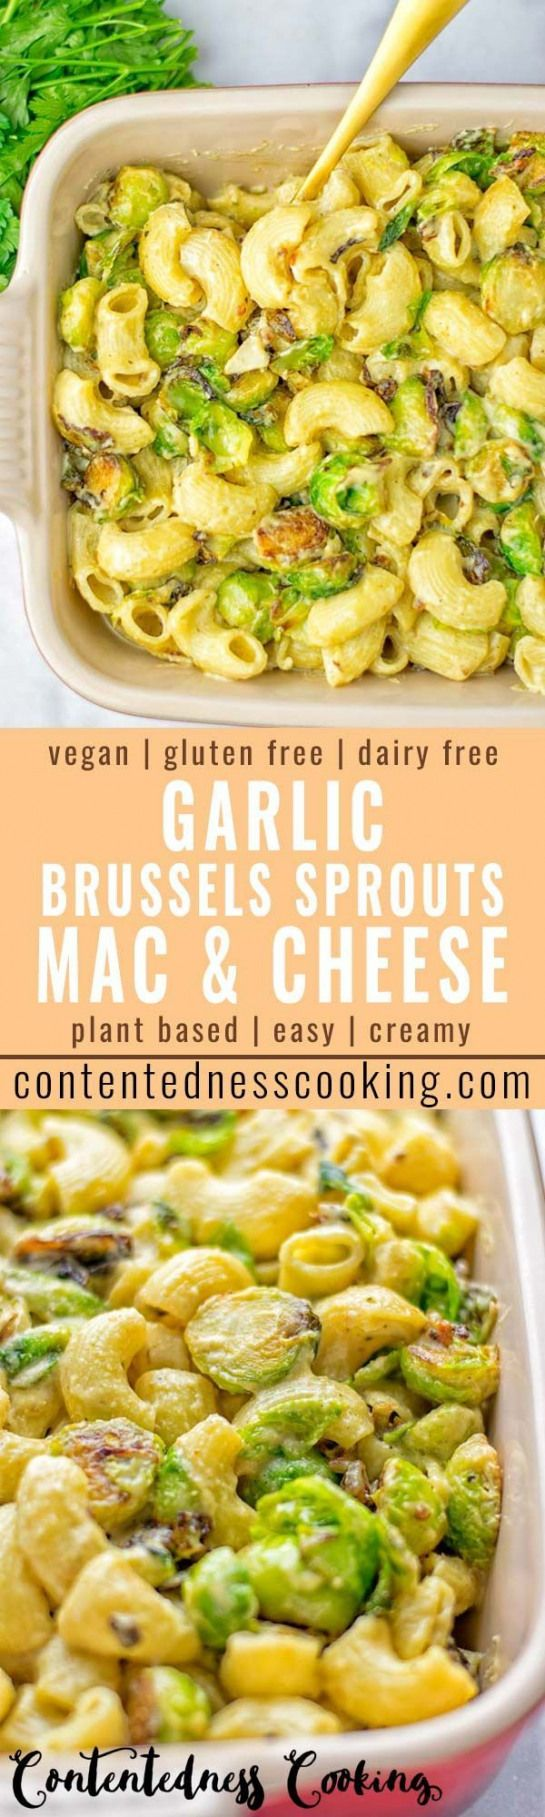 Your favorite recipe source for healthy food [Paleo, Vegan, Gluten free] This Garlic Brussels Sprouts Mac and Cheese is entirely vegan gluten free and super easy to make. Its an amazing comfort food for dinner lunch meal prep work lunches date nights and of course the holidays. Everyone will get addicted to this from the first to the last bite try it now!